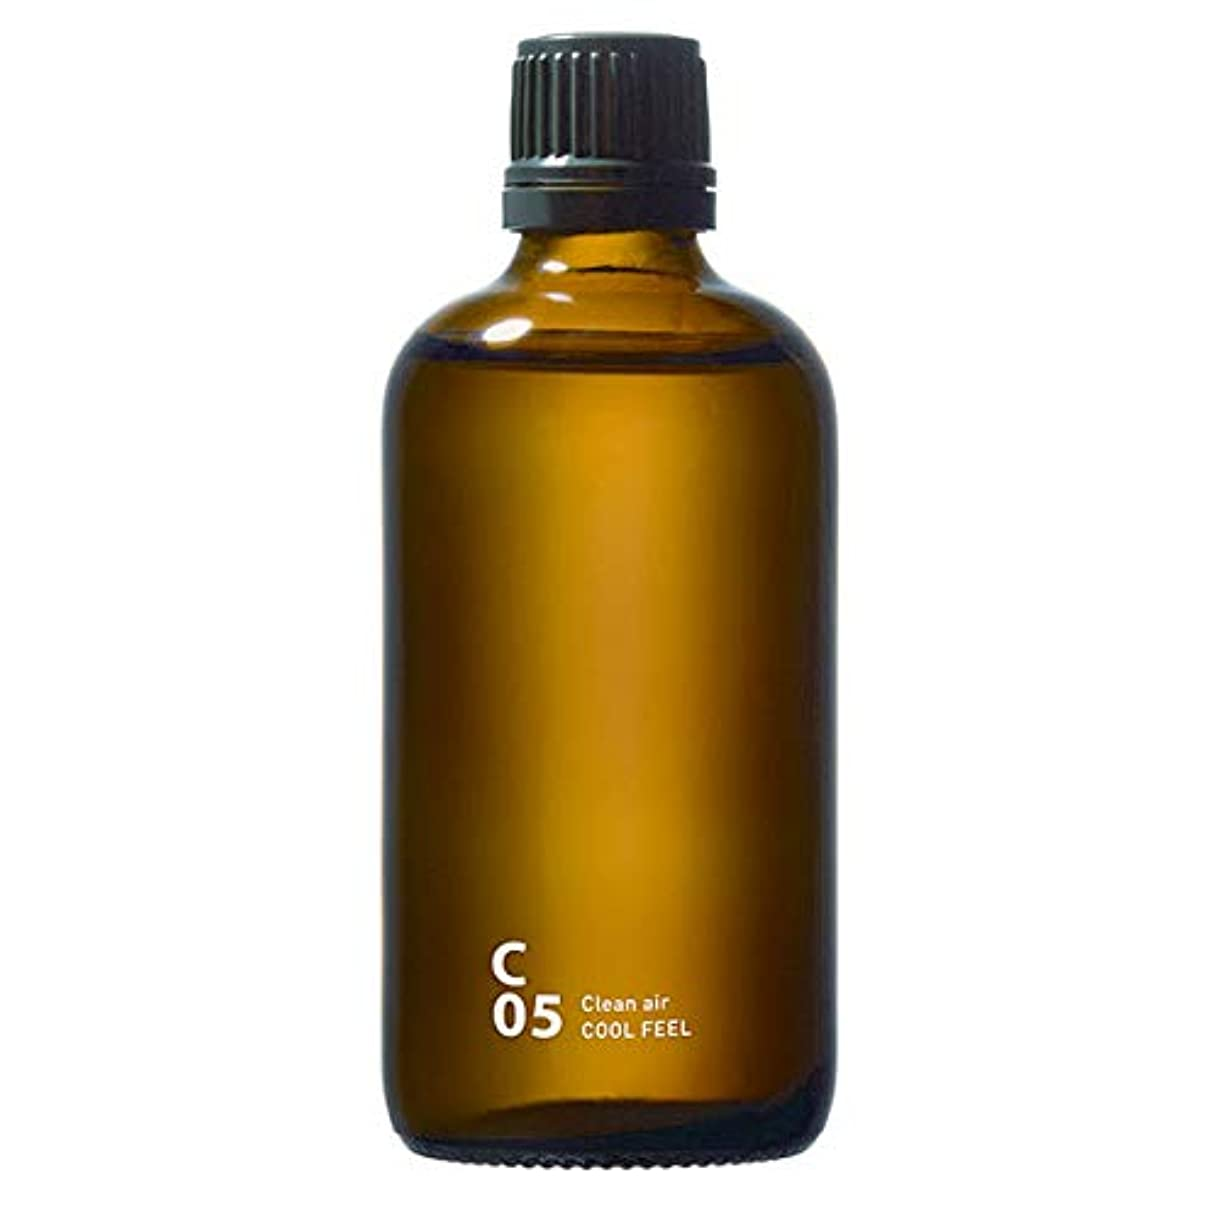 ふくろう補助造船C05 COOL FEEL piezo aroma oil 100ml